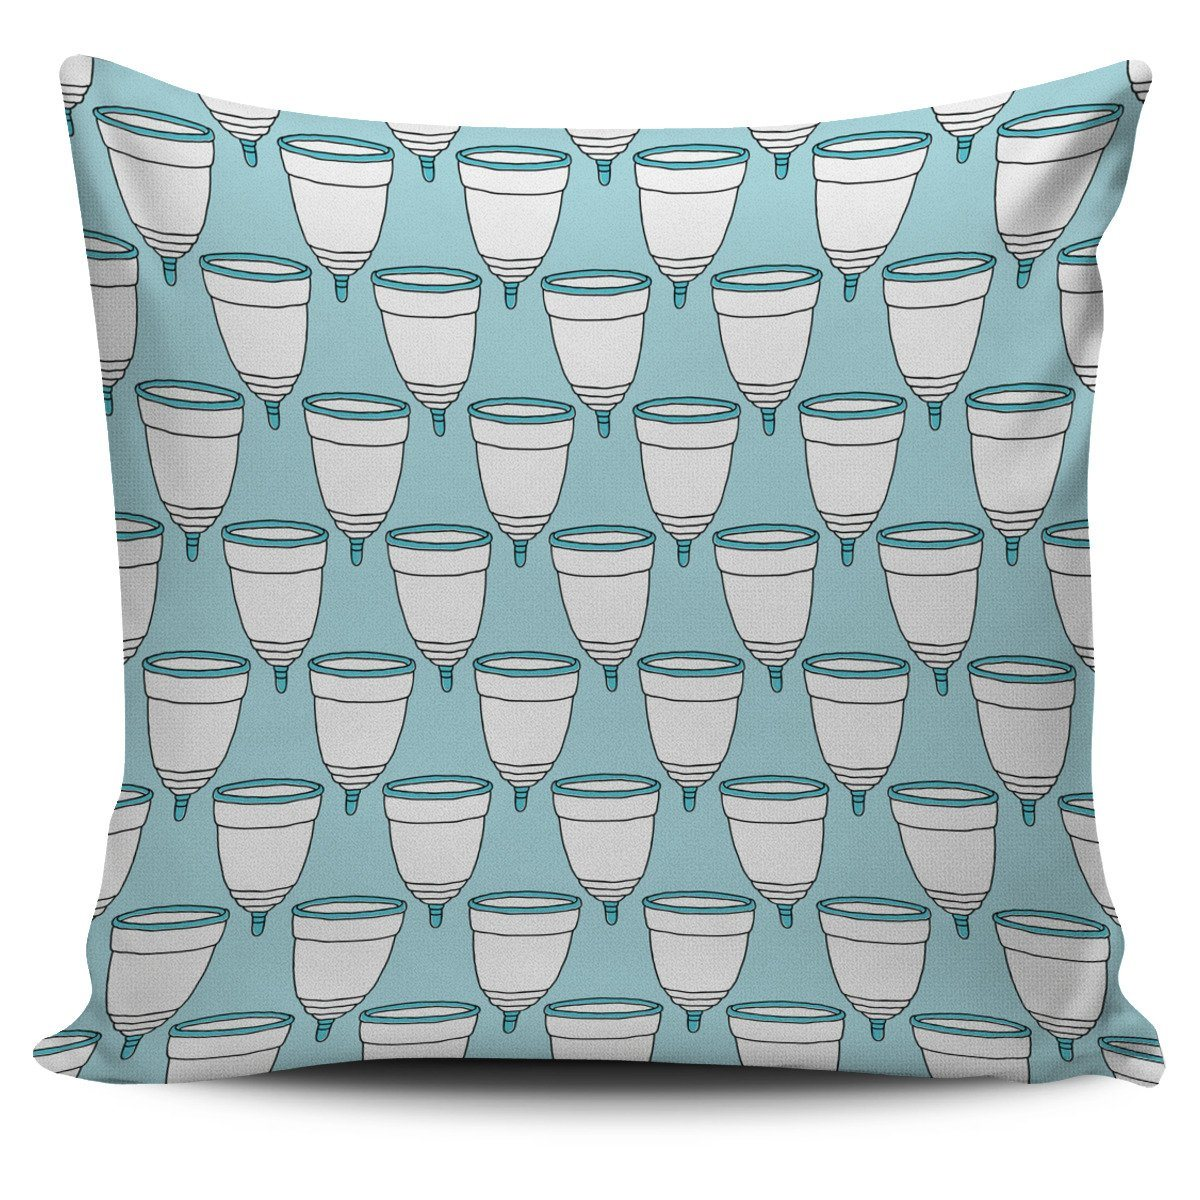 Menstrual Cups Pillow Cover